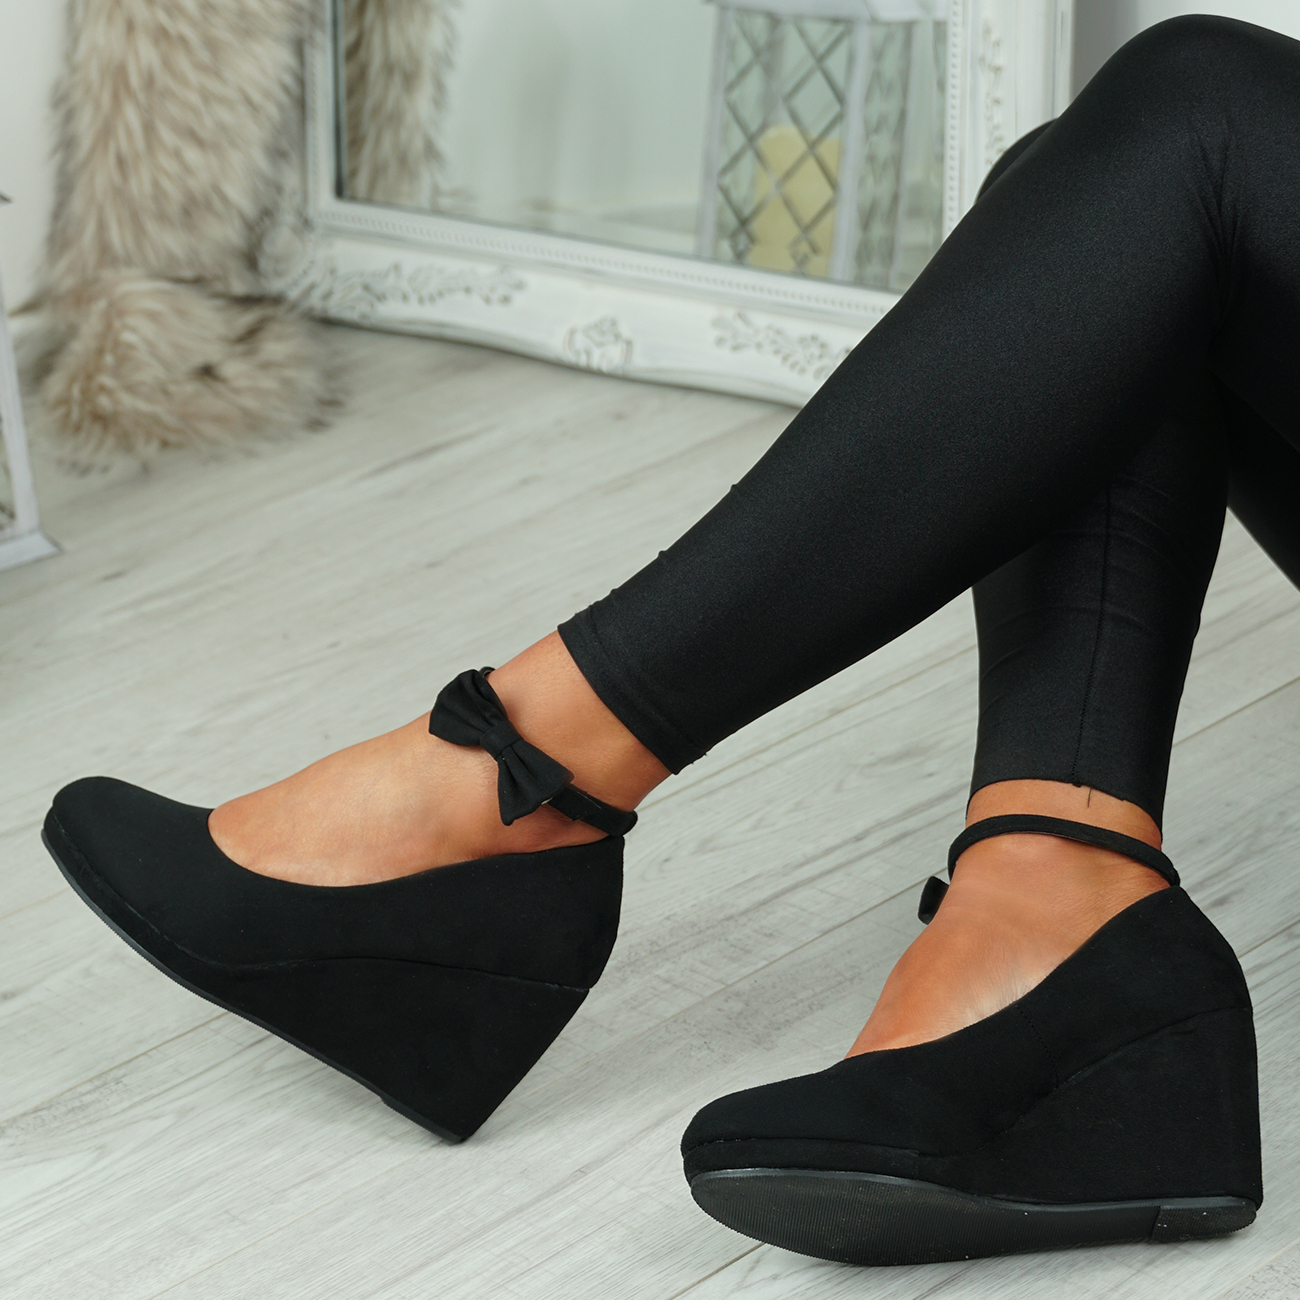 NEW-WOMENS-ANKLE-STRAP-WEDGES-LADIES-HIGH-HEEL-BOW-PUMPS-PLATFORM-SHOES thumbnail 8